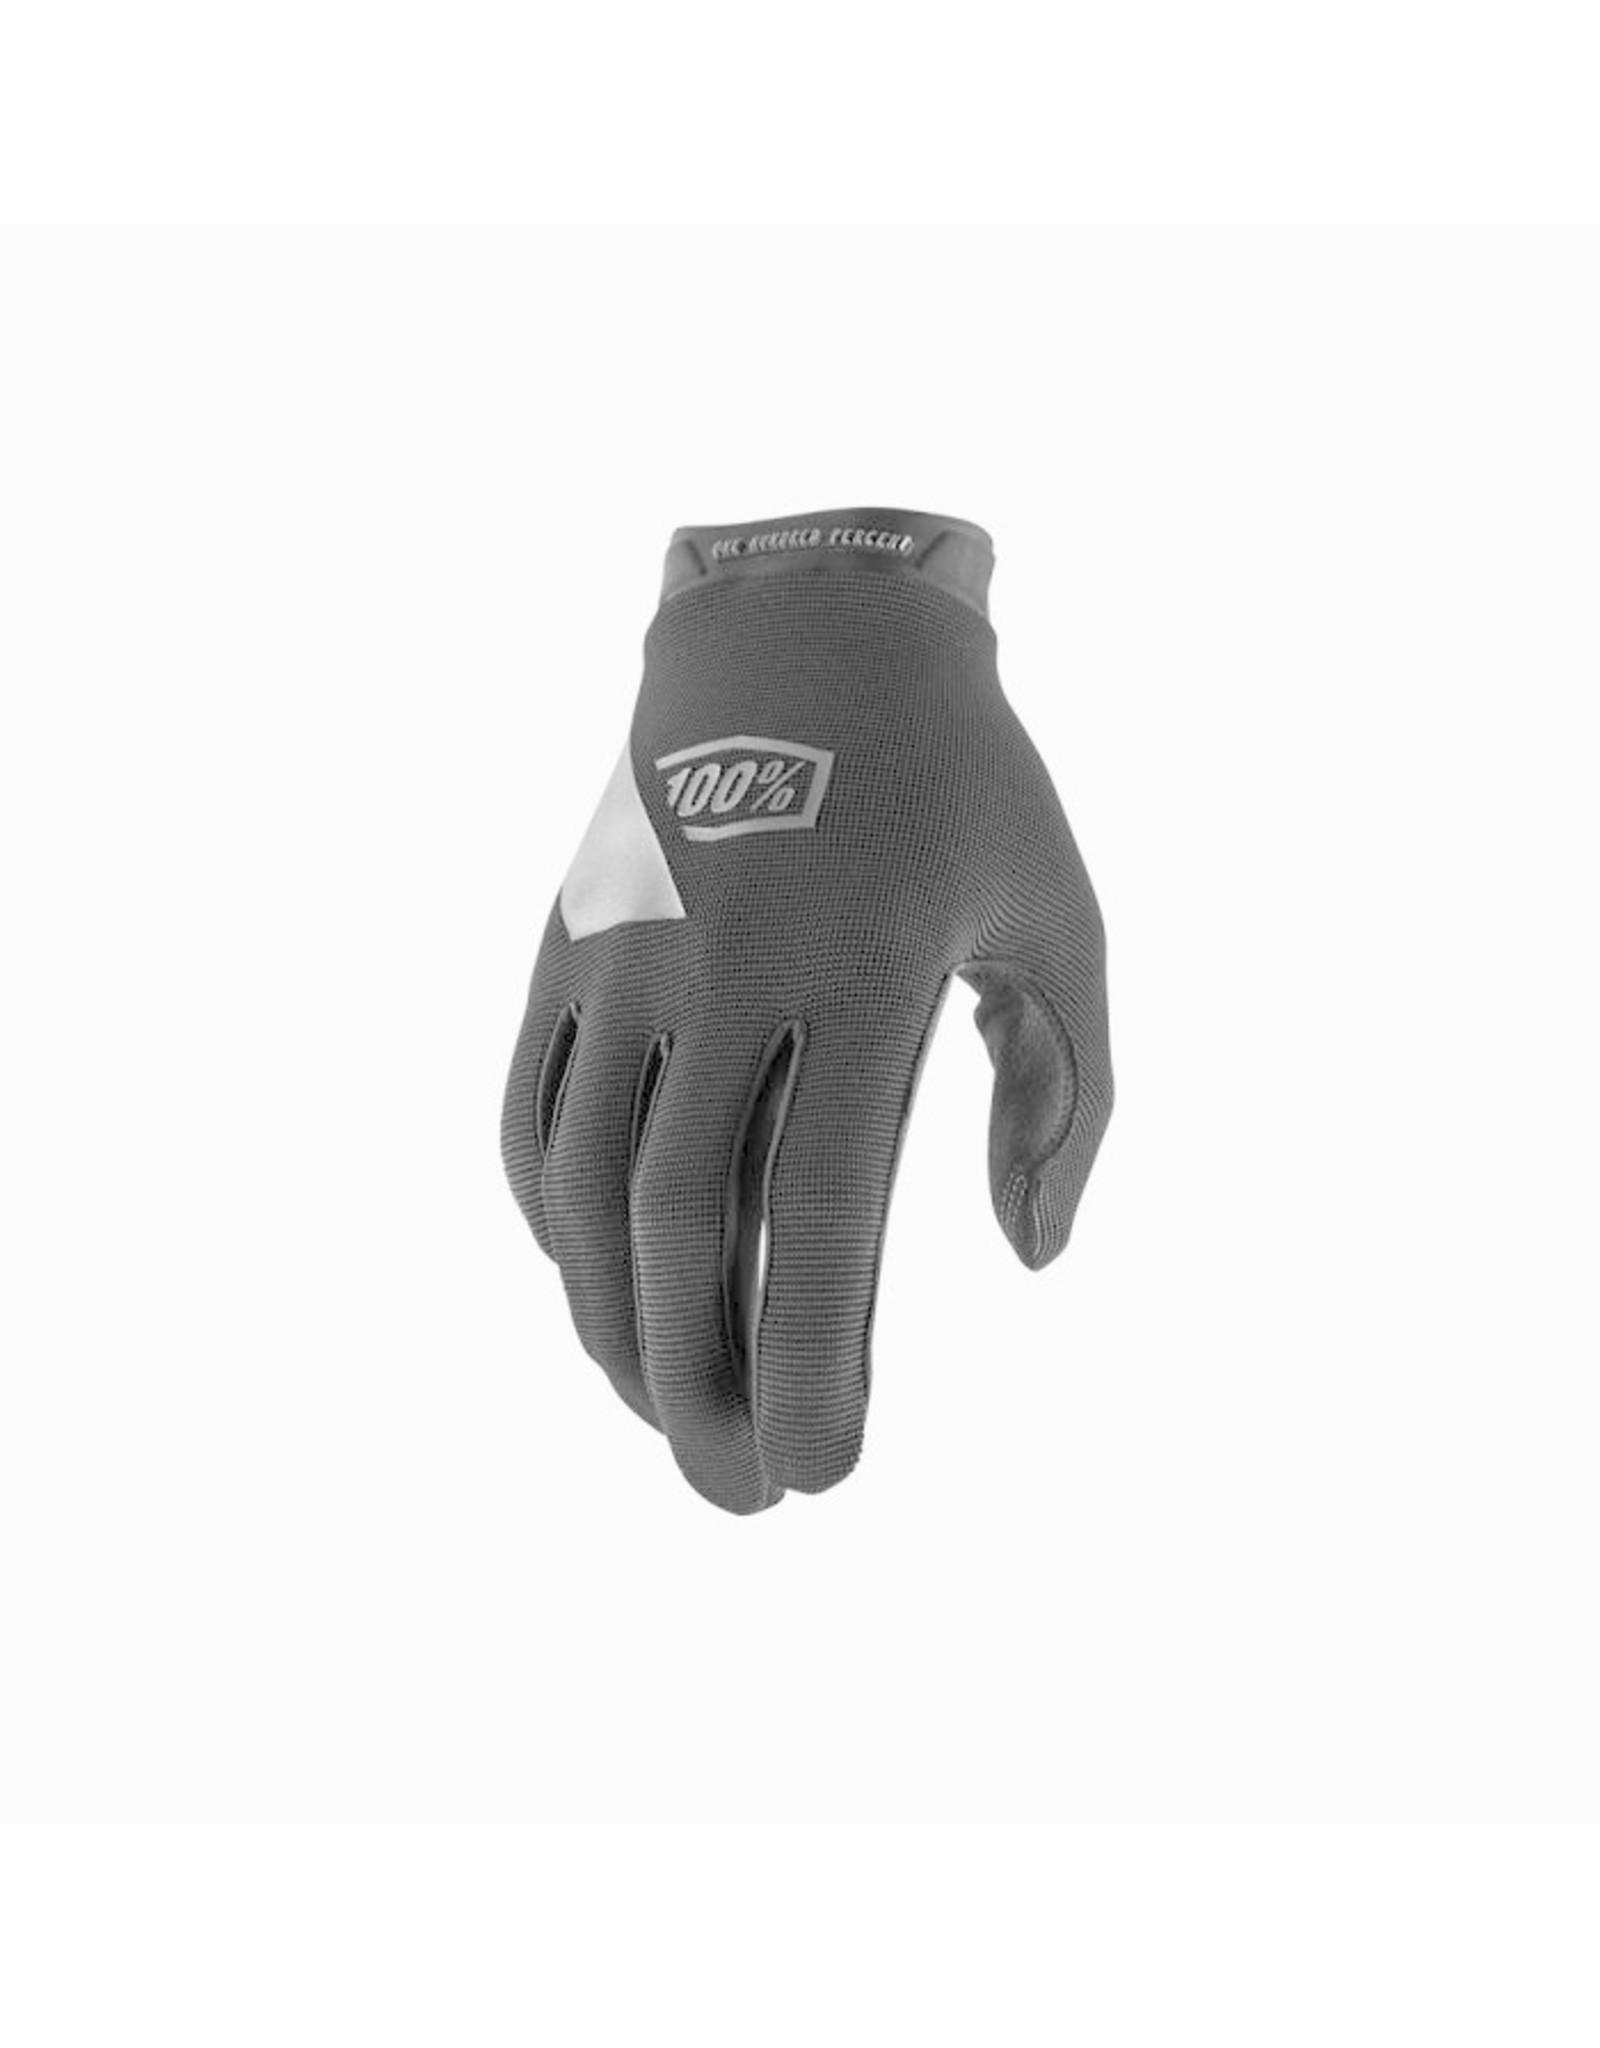 100% 100% RIDECAMP GLOVE YOUTH